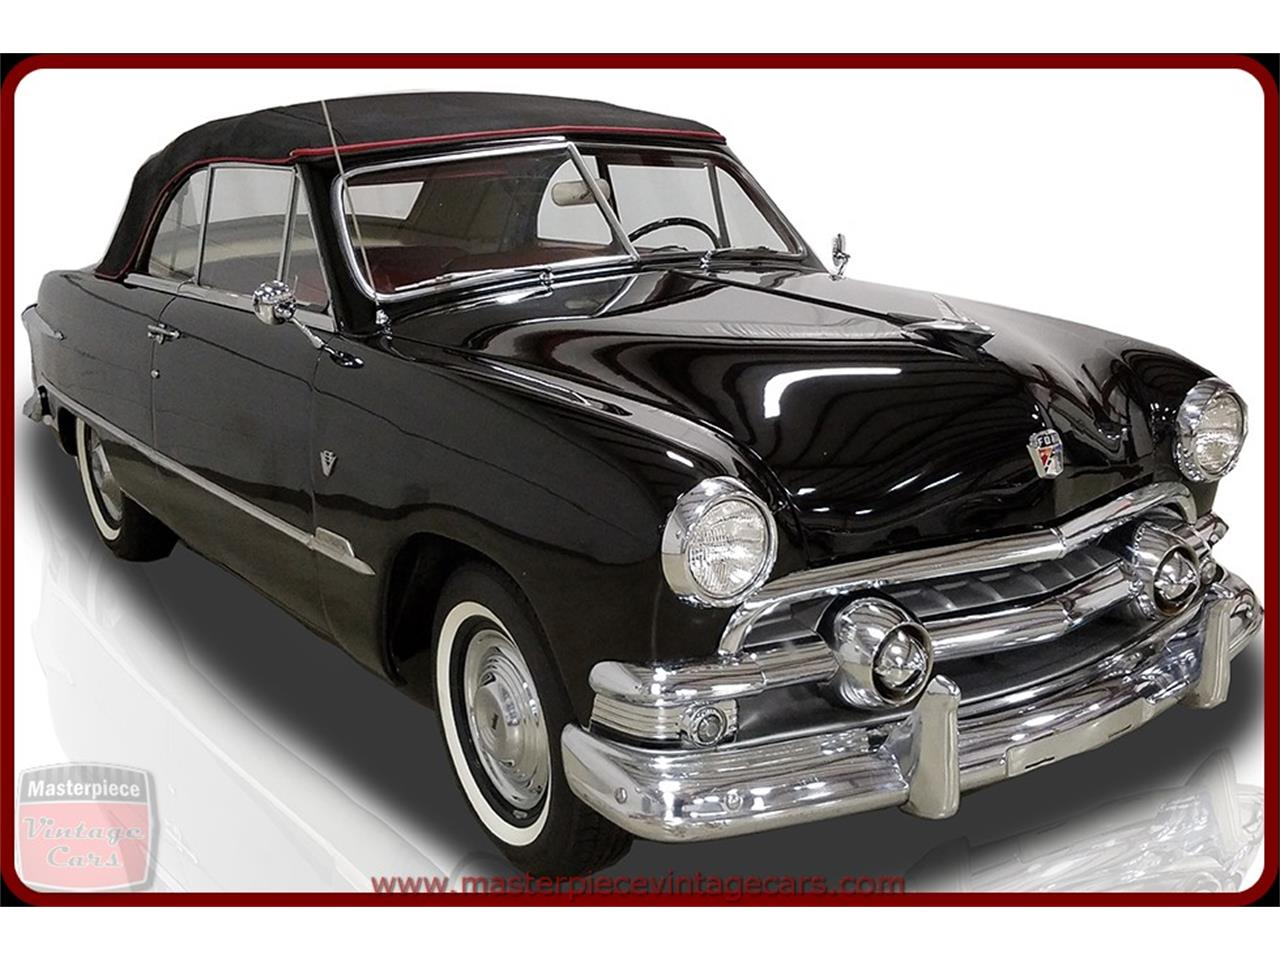 Large Picture of '51 Ford Convertible located in Whiteland Indiana - $39,900.00 Offered by Masterpiece Vintage Cars - KAMX